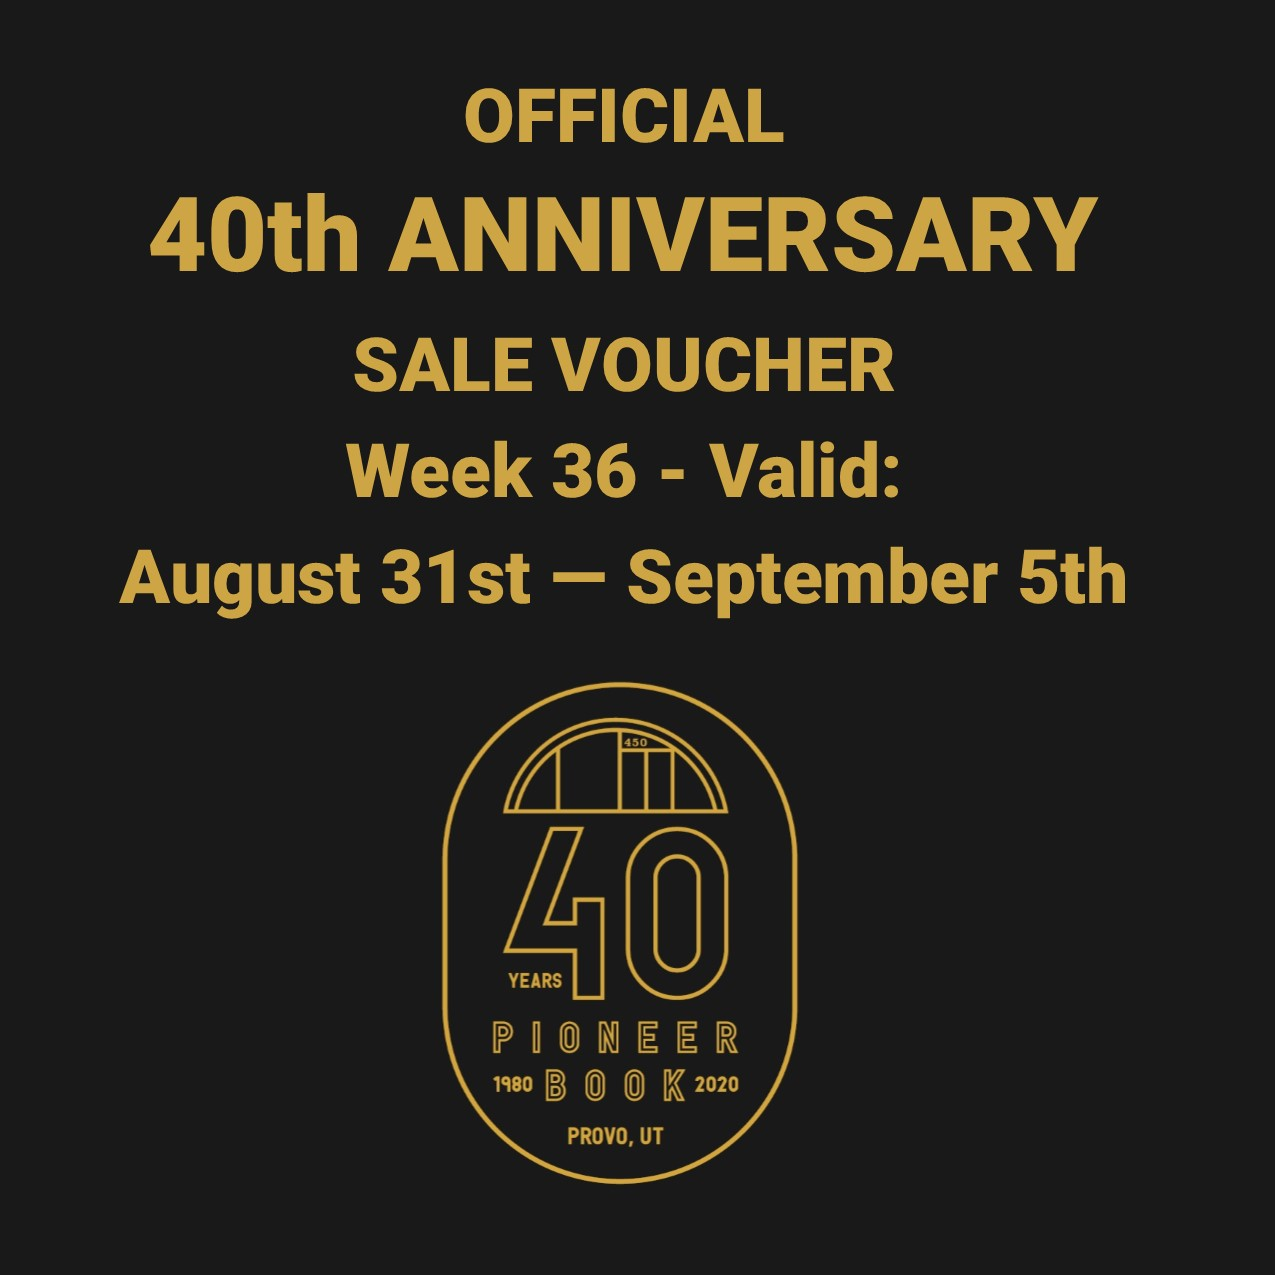 Image for 40th Anniversary Sale! Voucher - Week 36: August 31st - September 5th